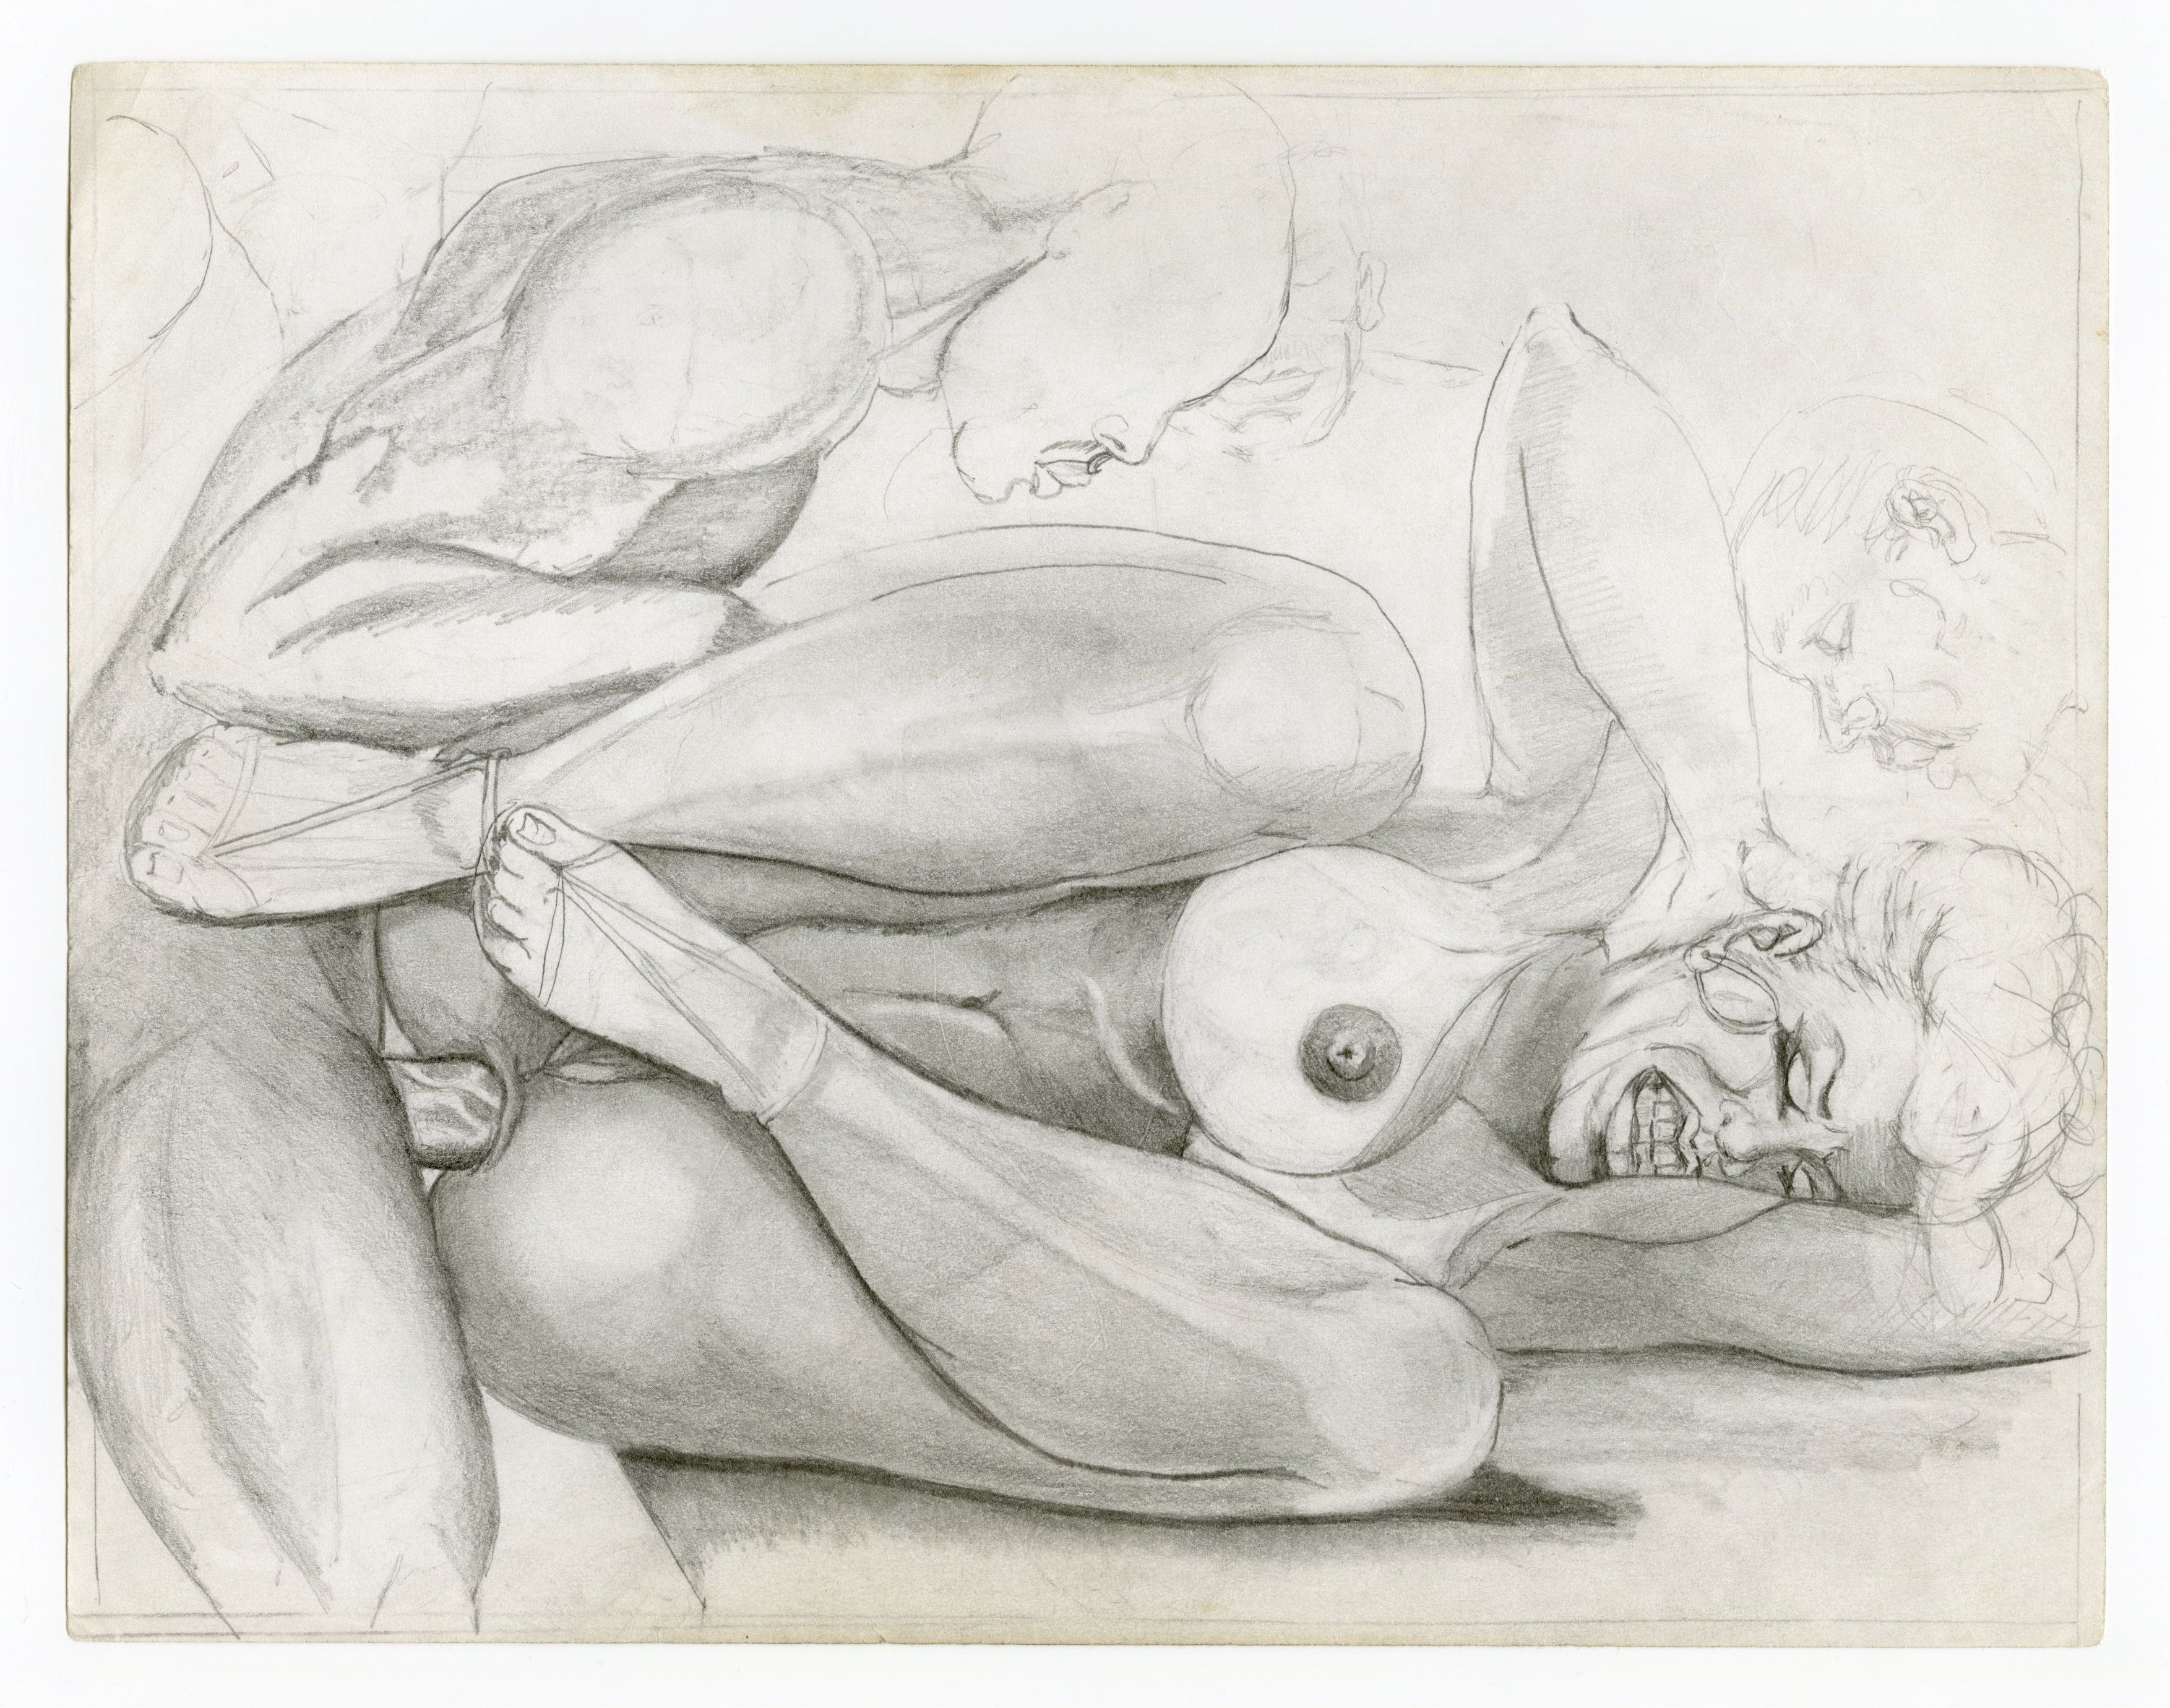 The of human figure pencil drawings